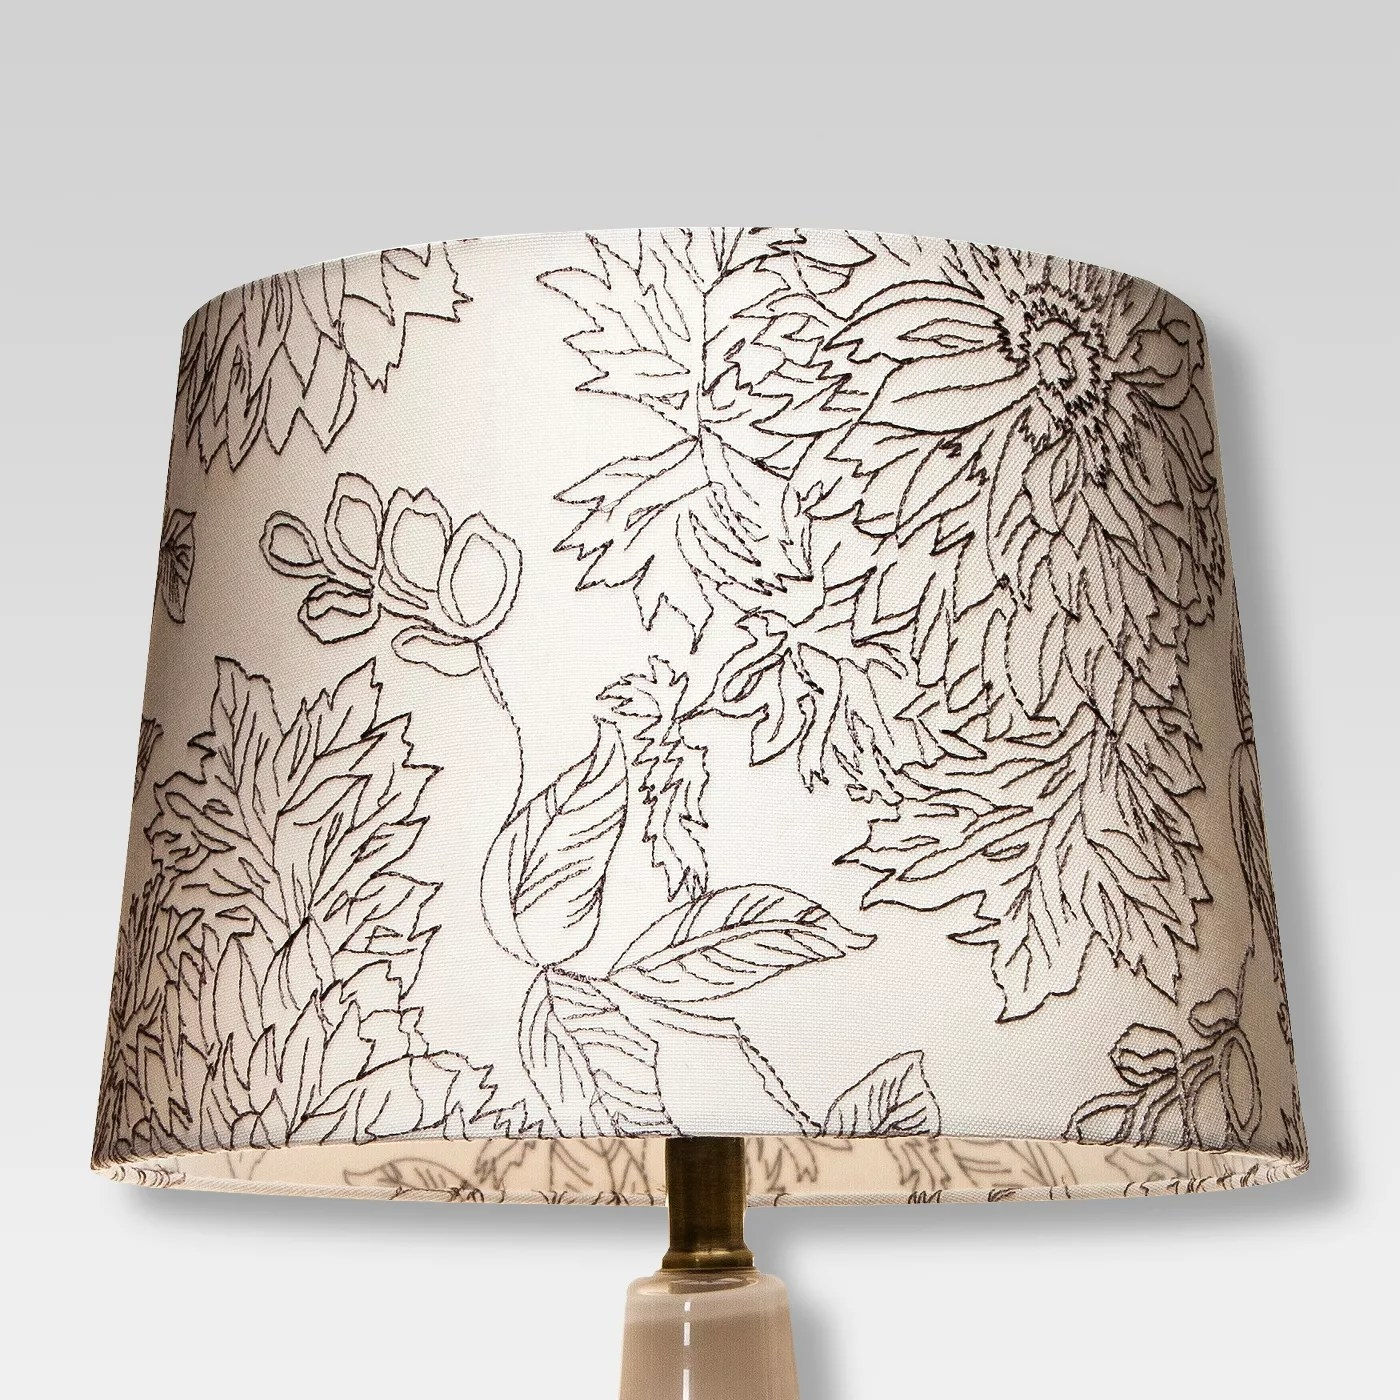 The white lampshade with a black floral pattern stitched into it